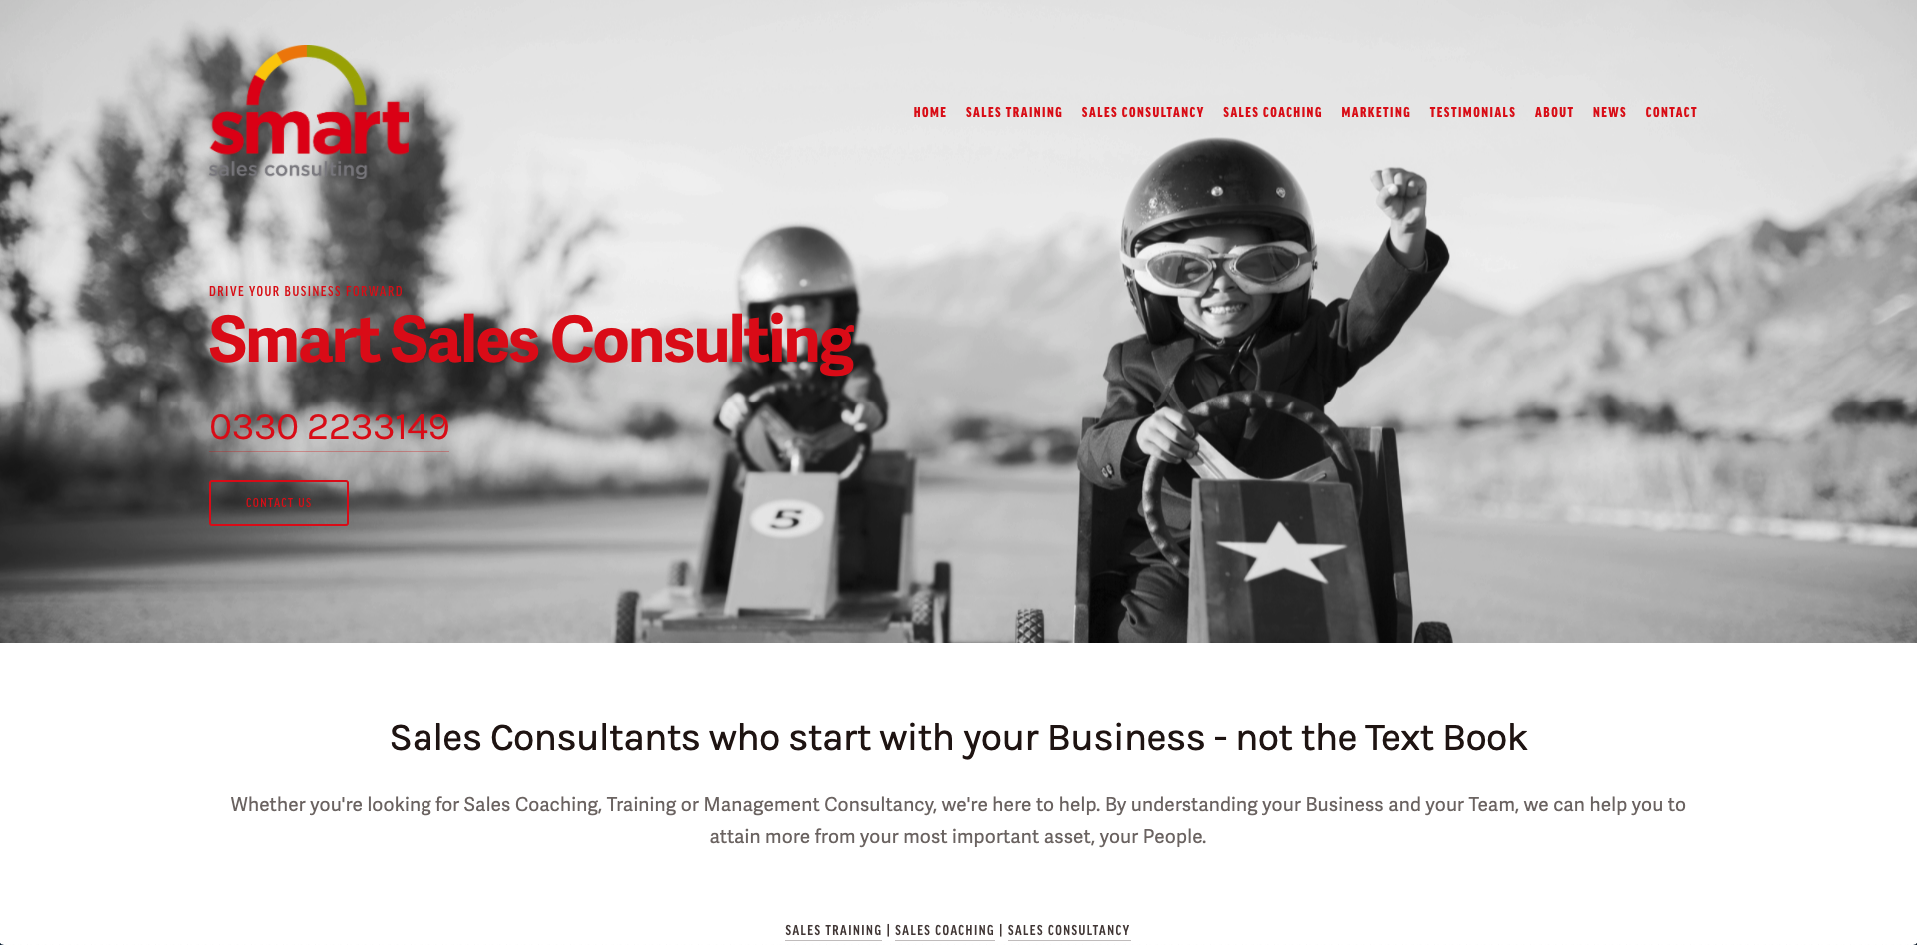 Smart Sales Consulting